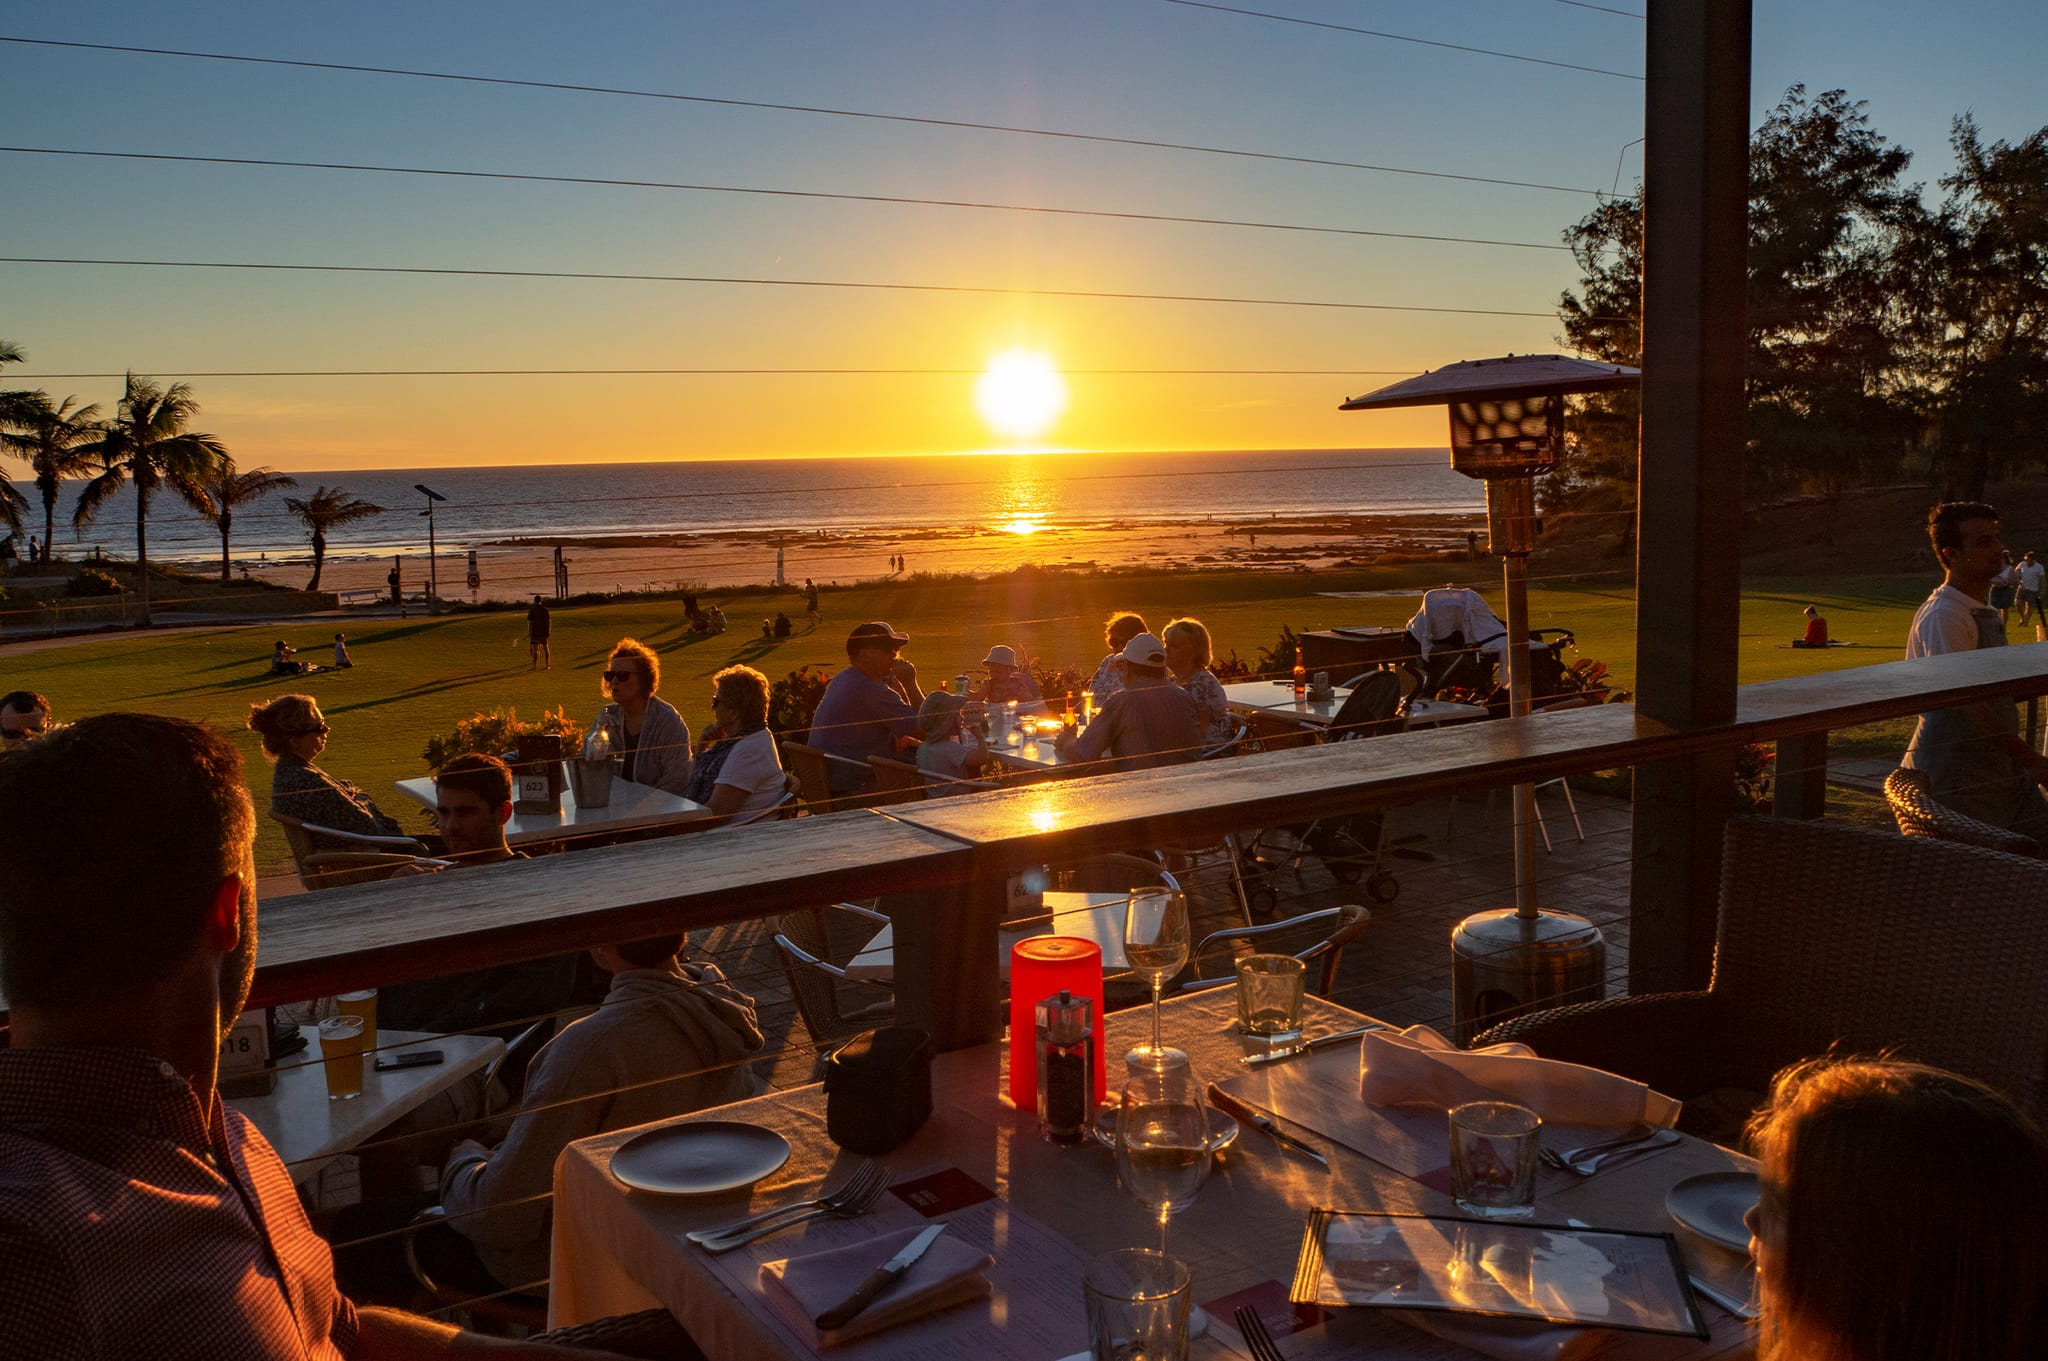 Cable Beach Club sunset bar and grill view